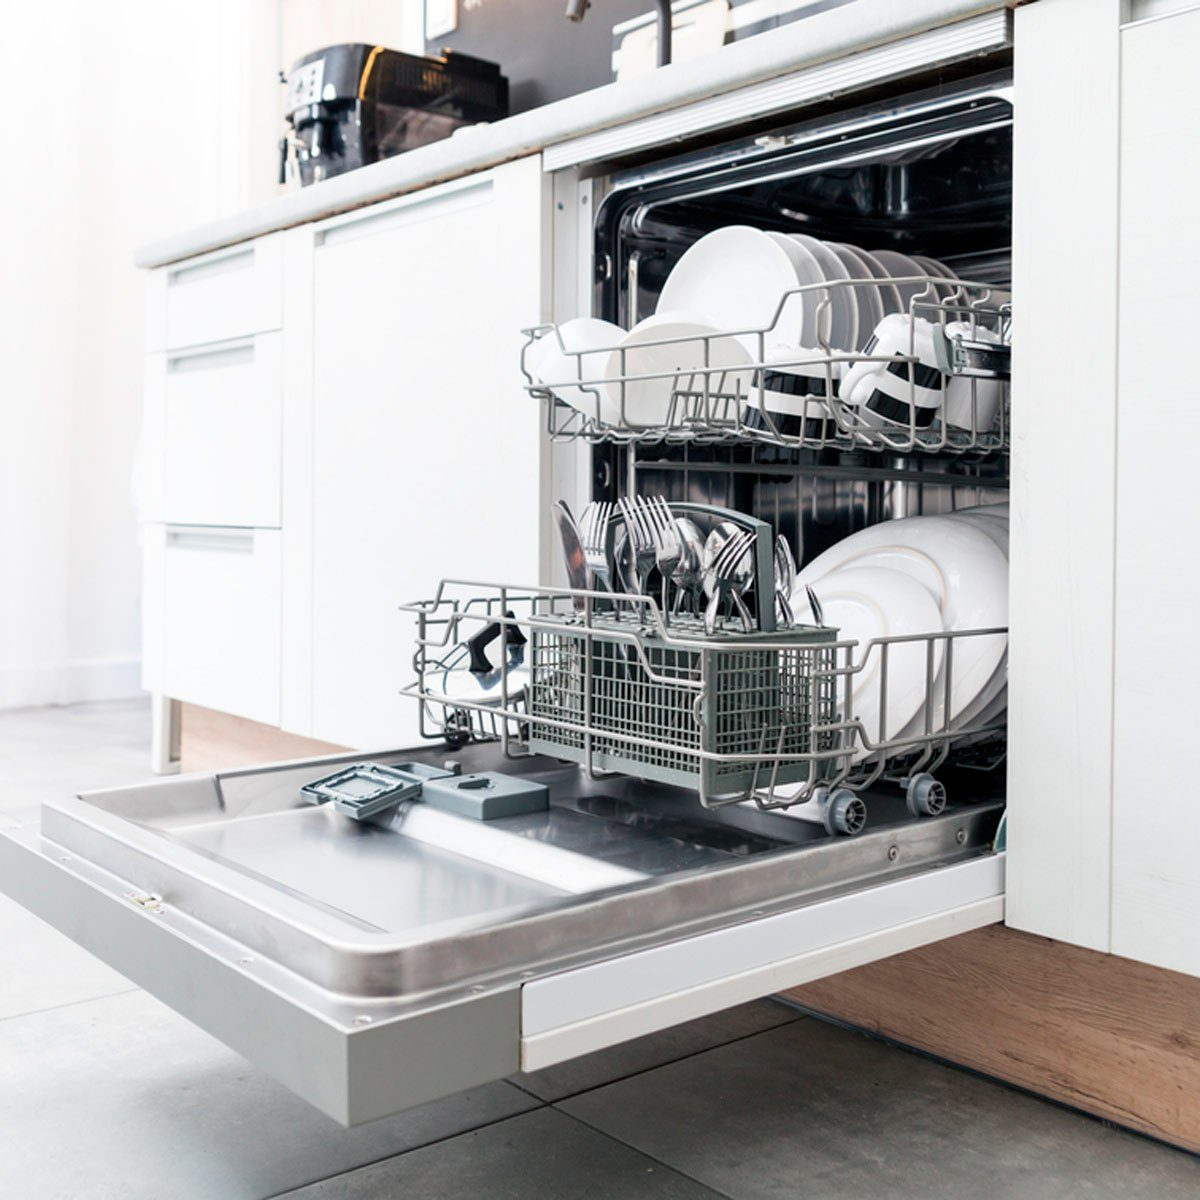 You Should Always Add This One Ingredient to Your Dishwasher